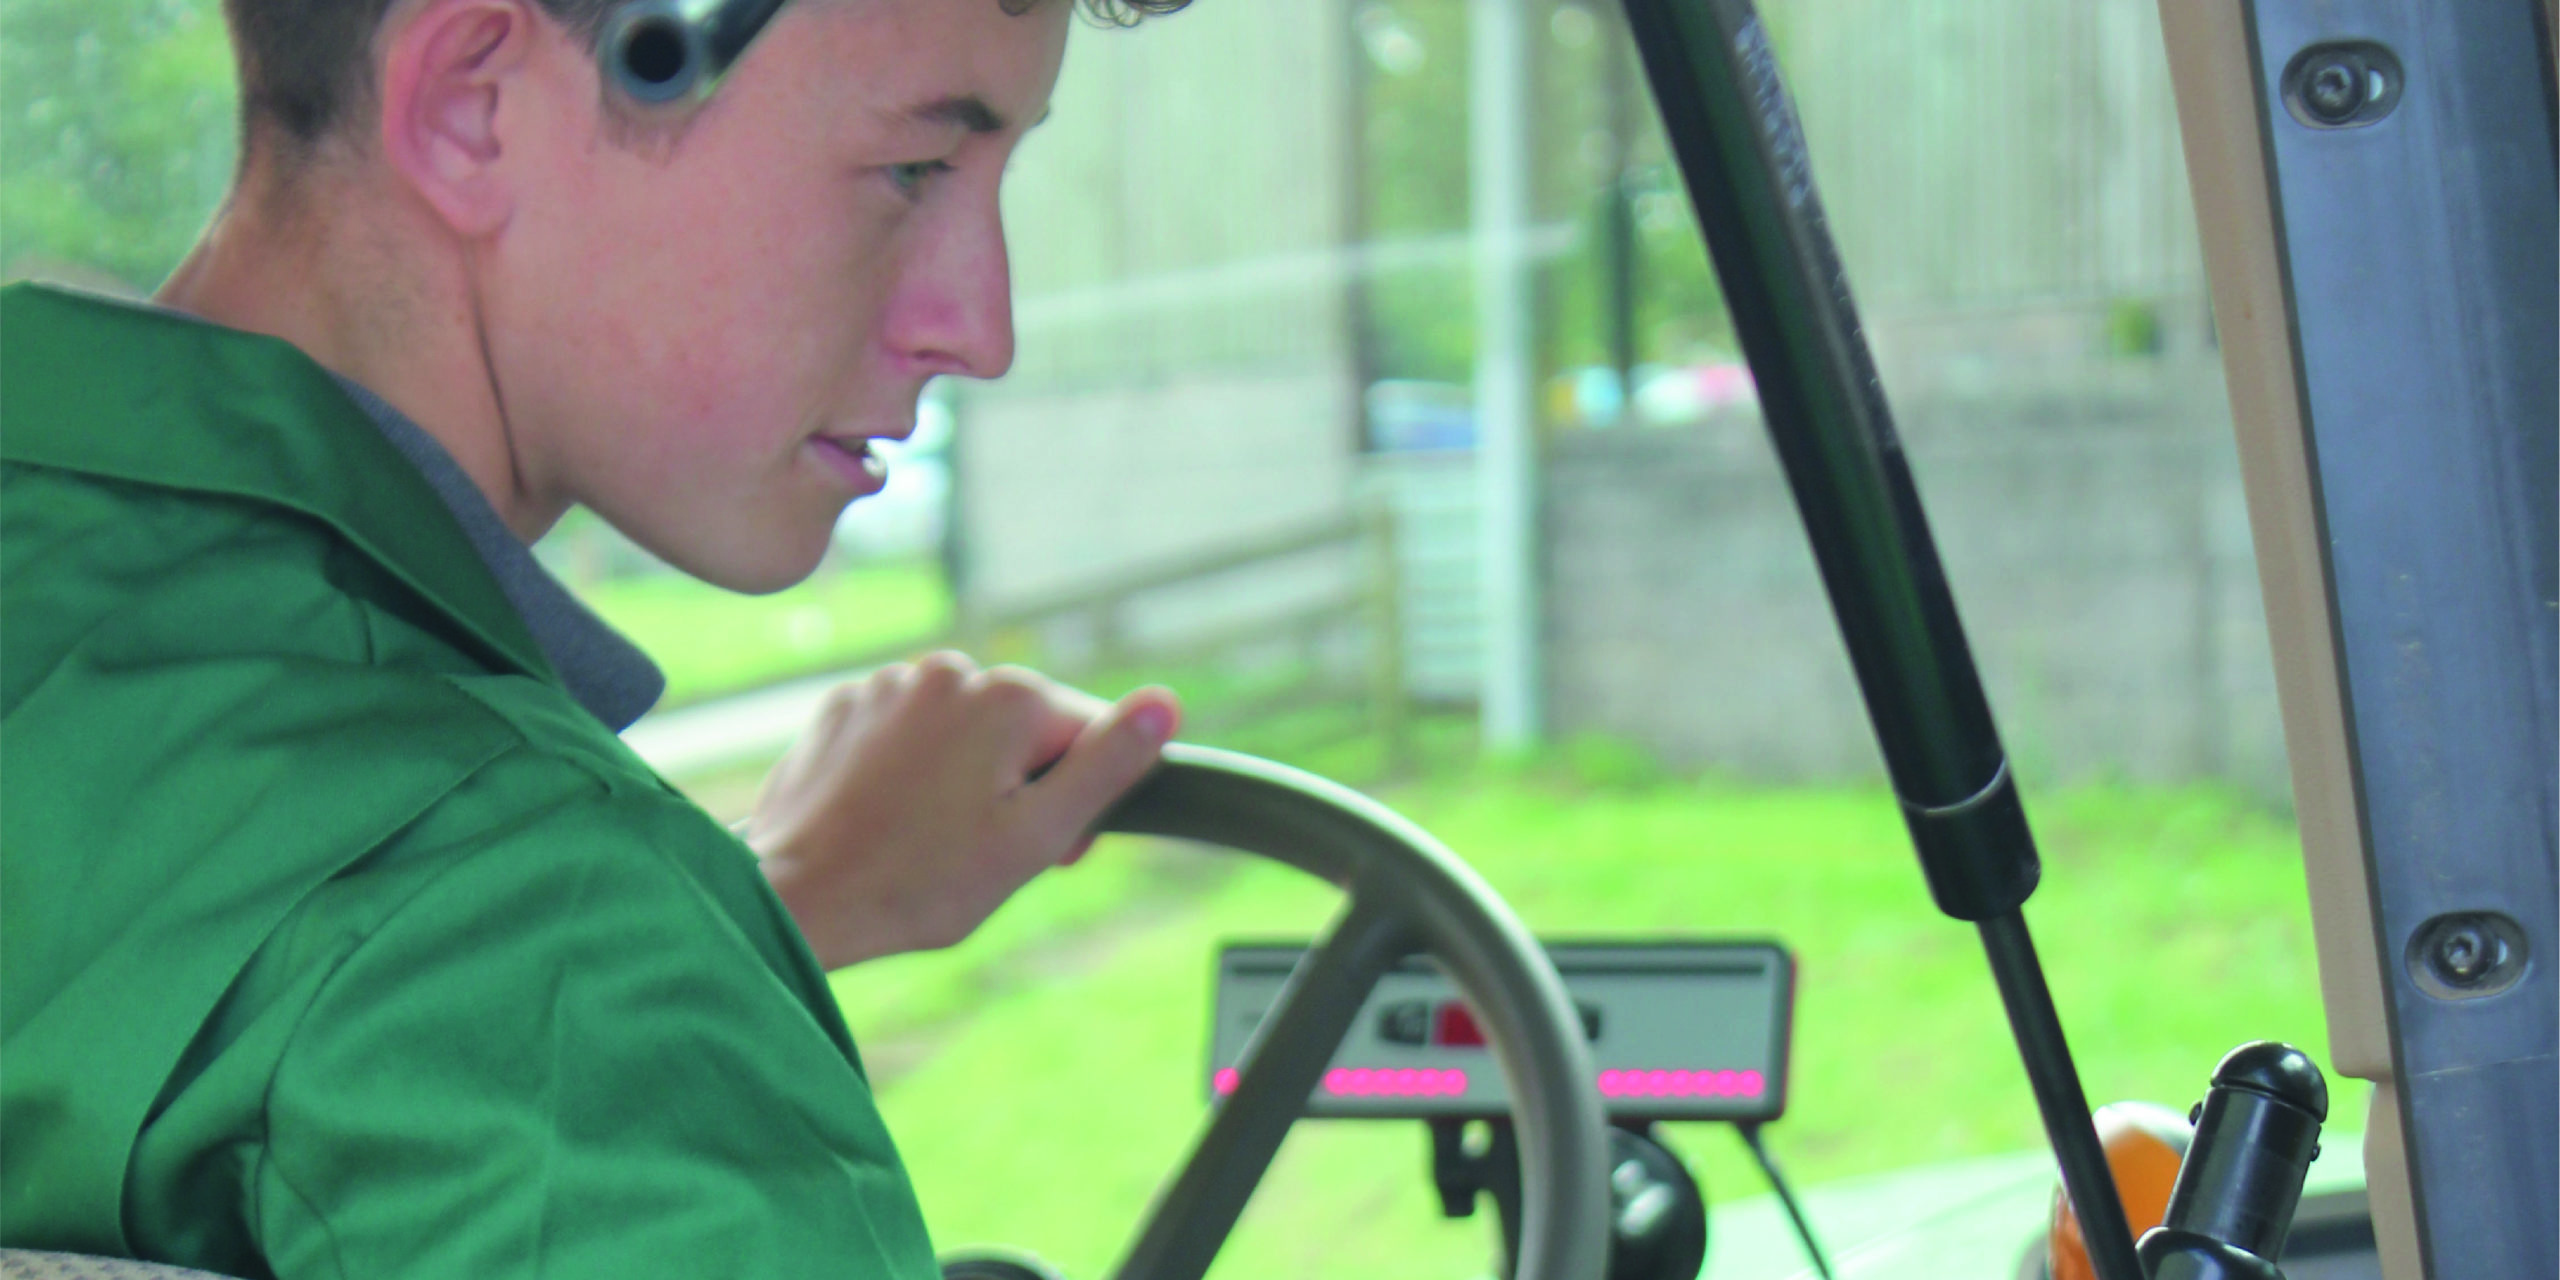 Close-up of student driving tractor. Student is looking right, down towards controls.